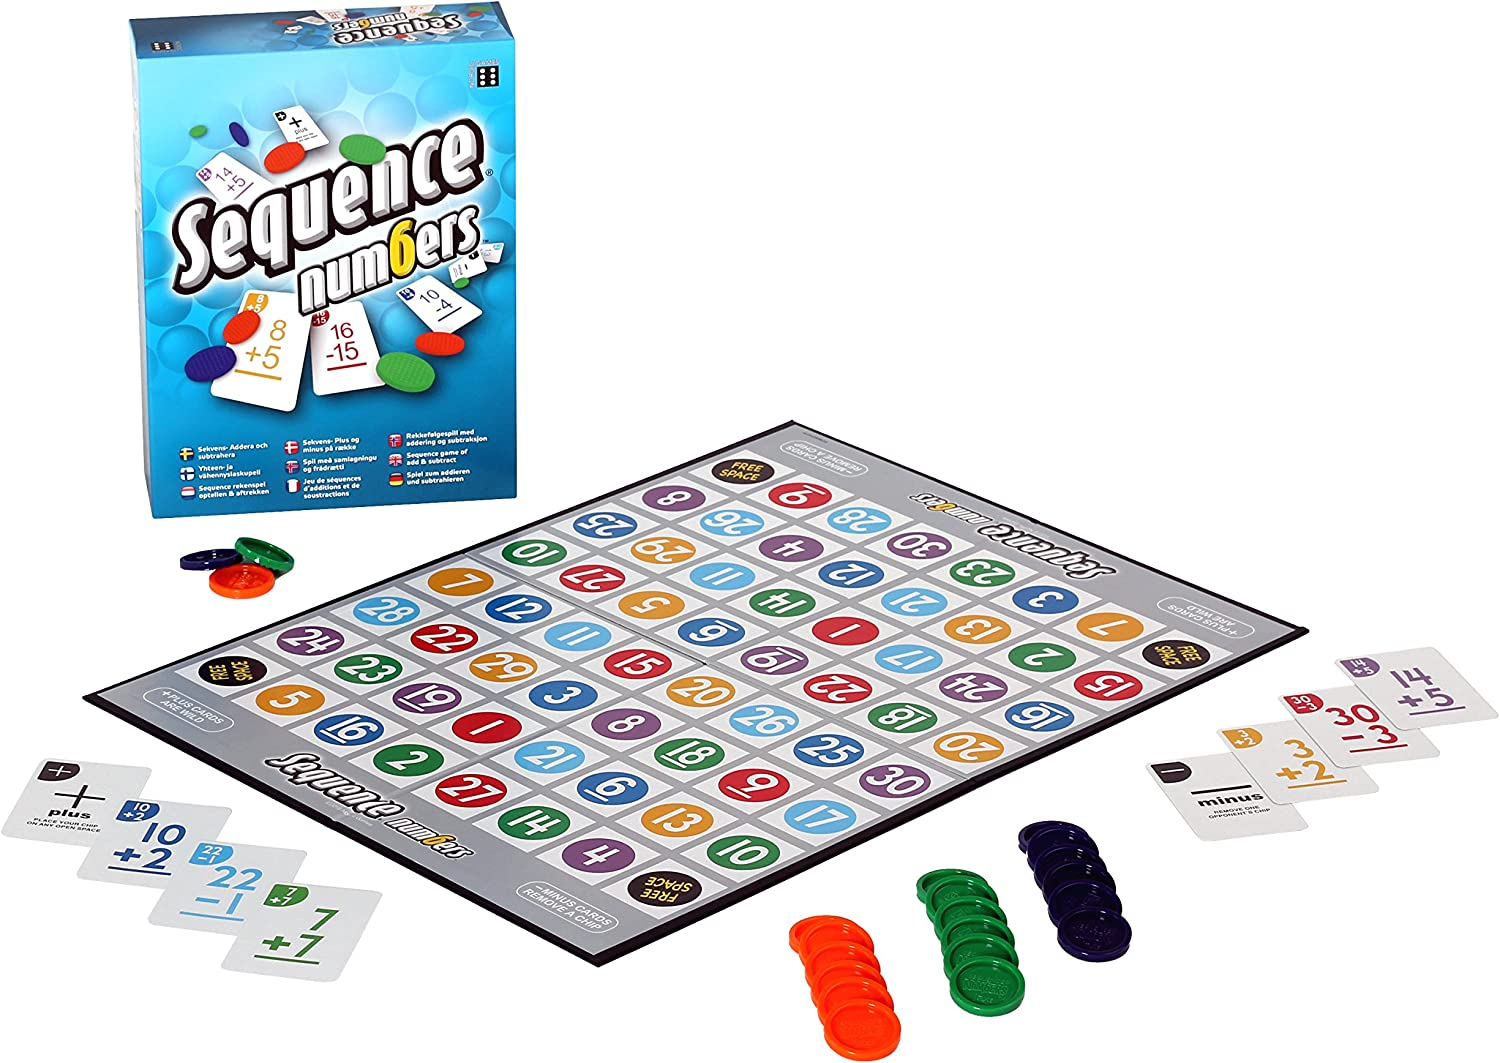 Juego de Mesa con números de Secuencia Winning Moves: Amazon.es ...